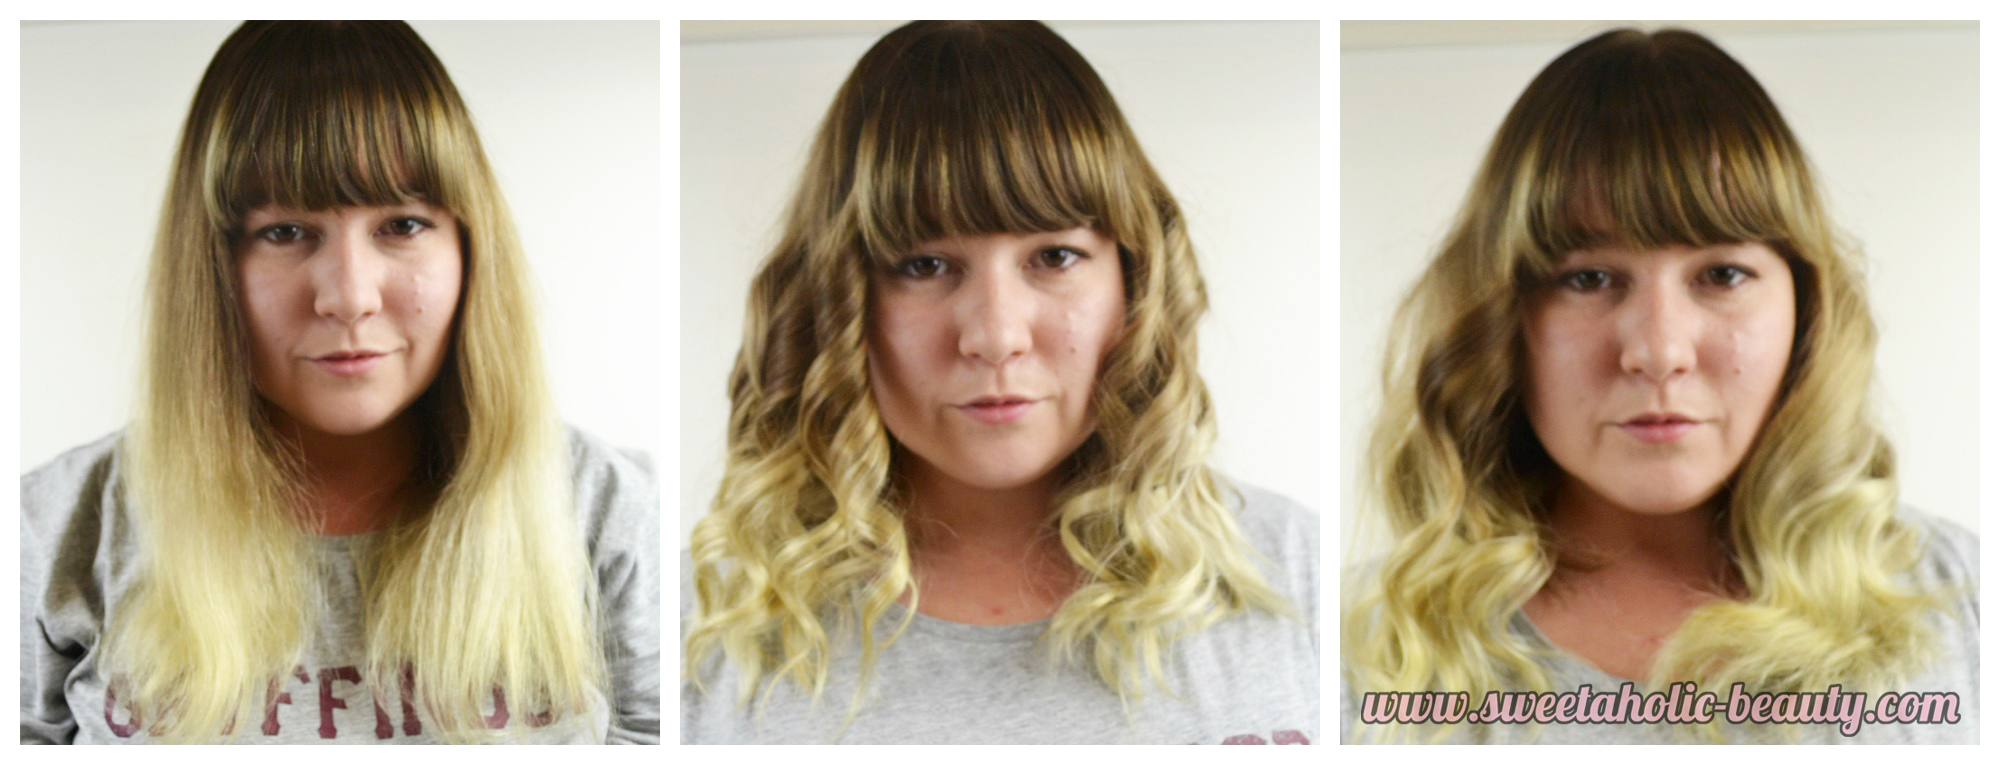 Irresistible Me Ruby Auto-Rotating Curling Iron Trialled & Tested - Sweetaholic Beauty